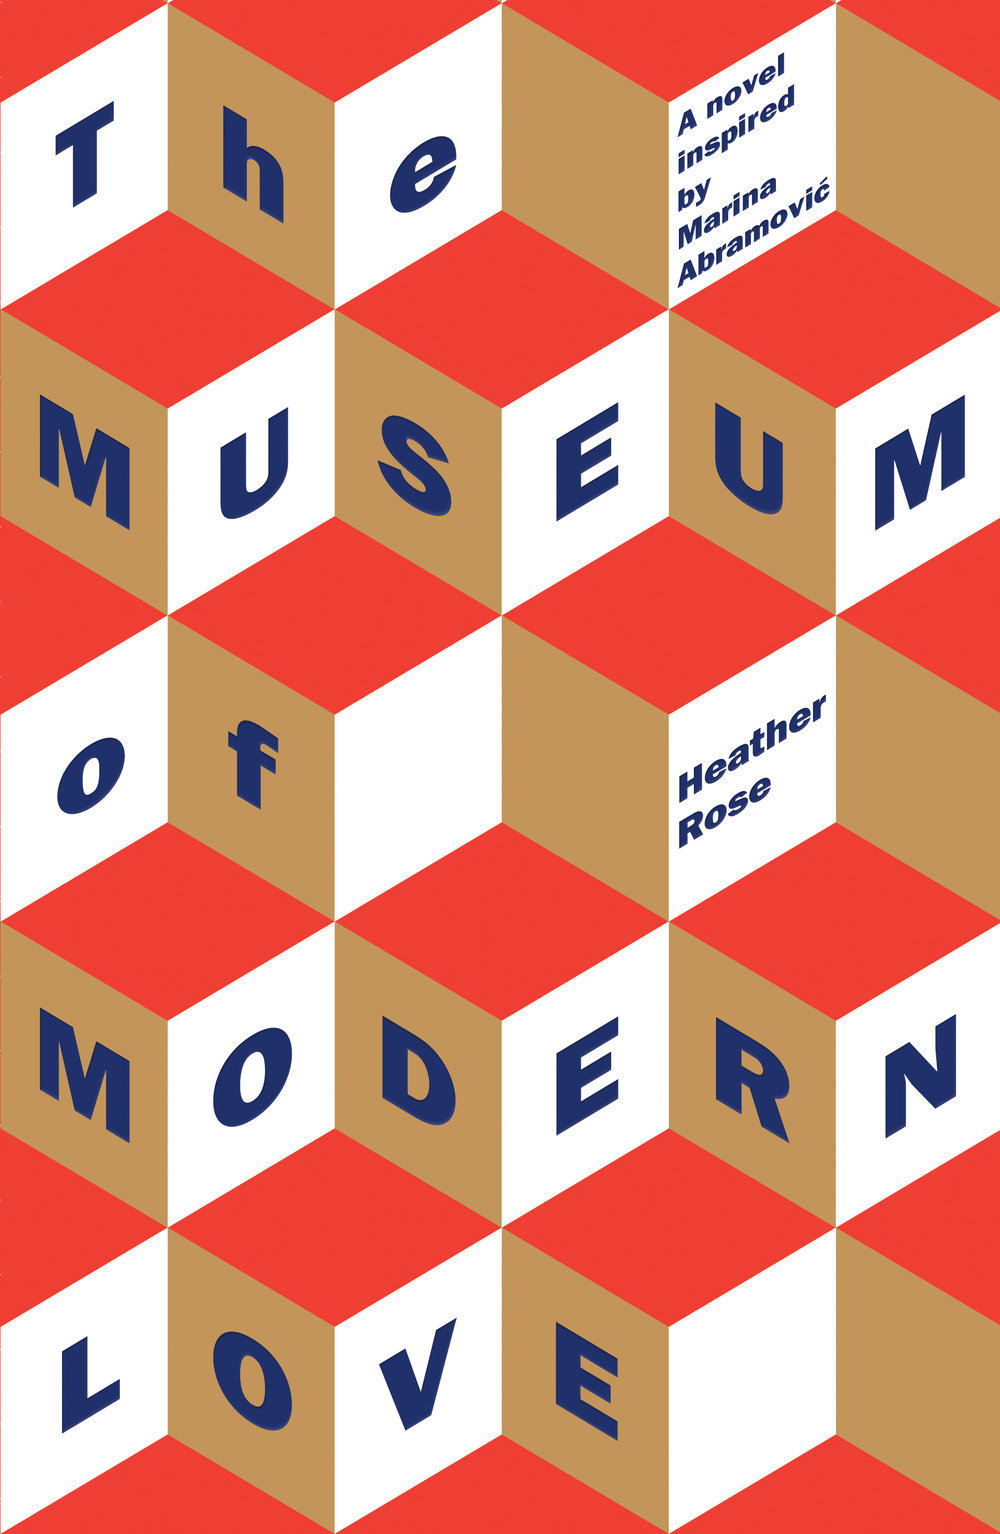 THE MUSEUM OF MODERN LOVE – HEATHER ROSE - A mesmerising literary novel about a lost man in search of connection - a meditation on love, art and commitment, set against the backdrop of one of the greatest art events in modern history, Marina Abramovic's The Artist is Present.